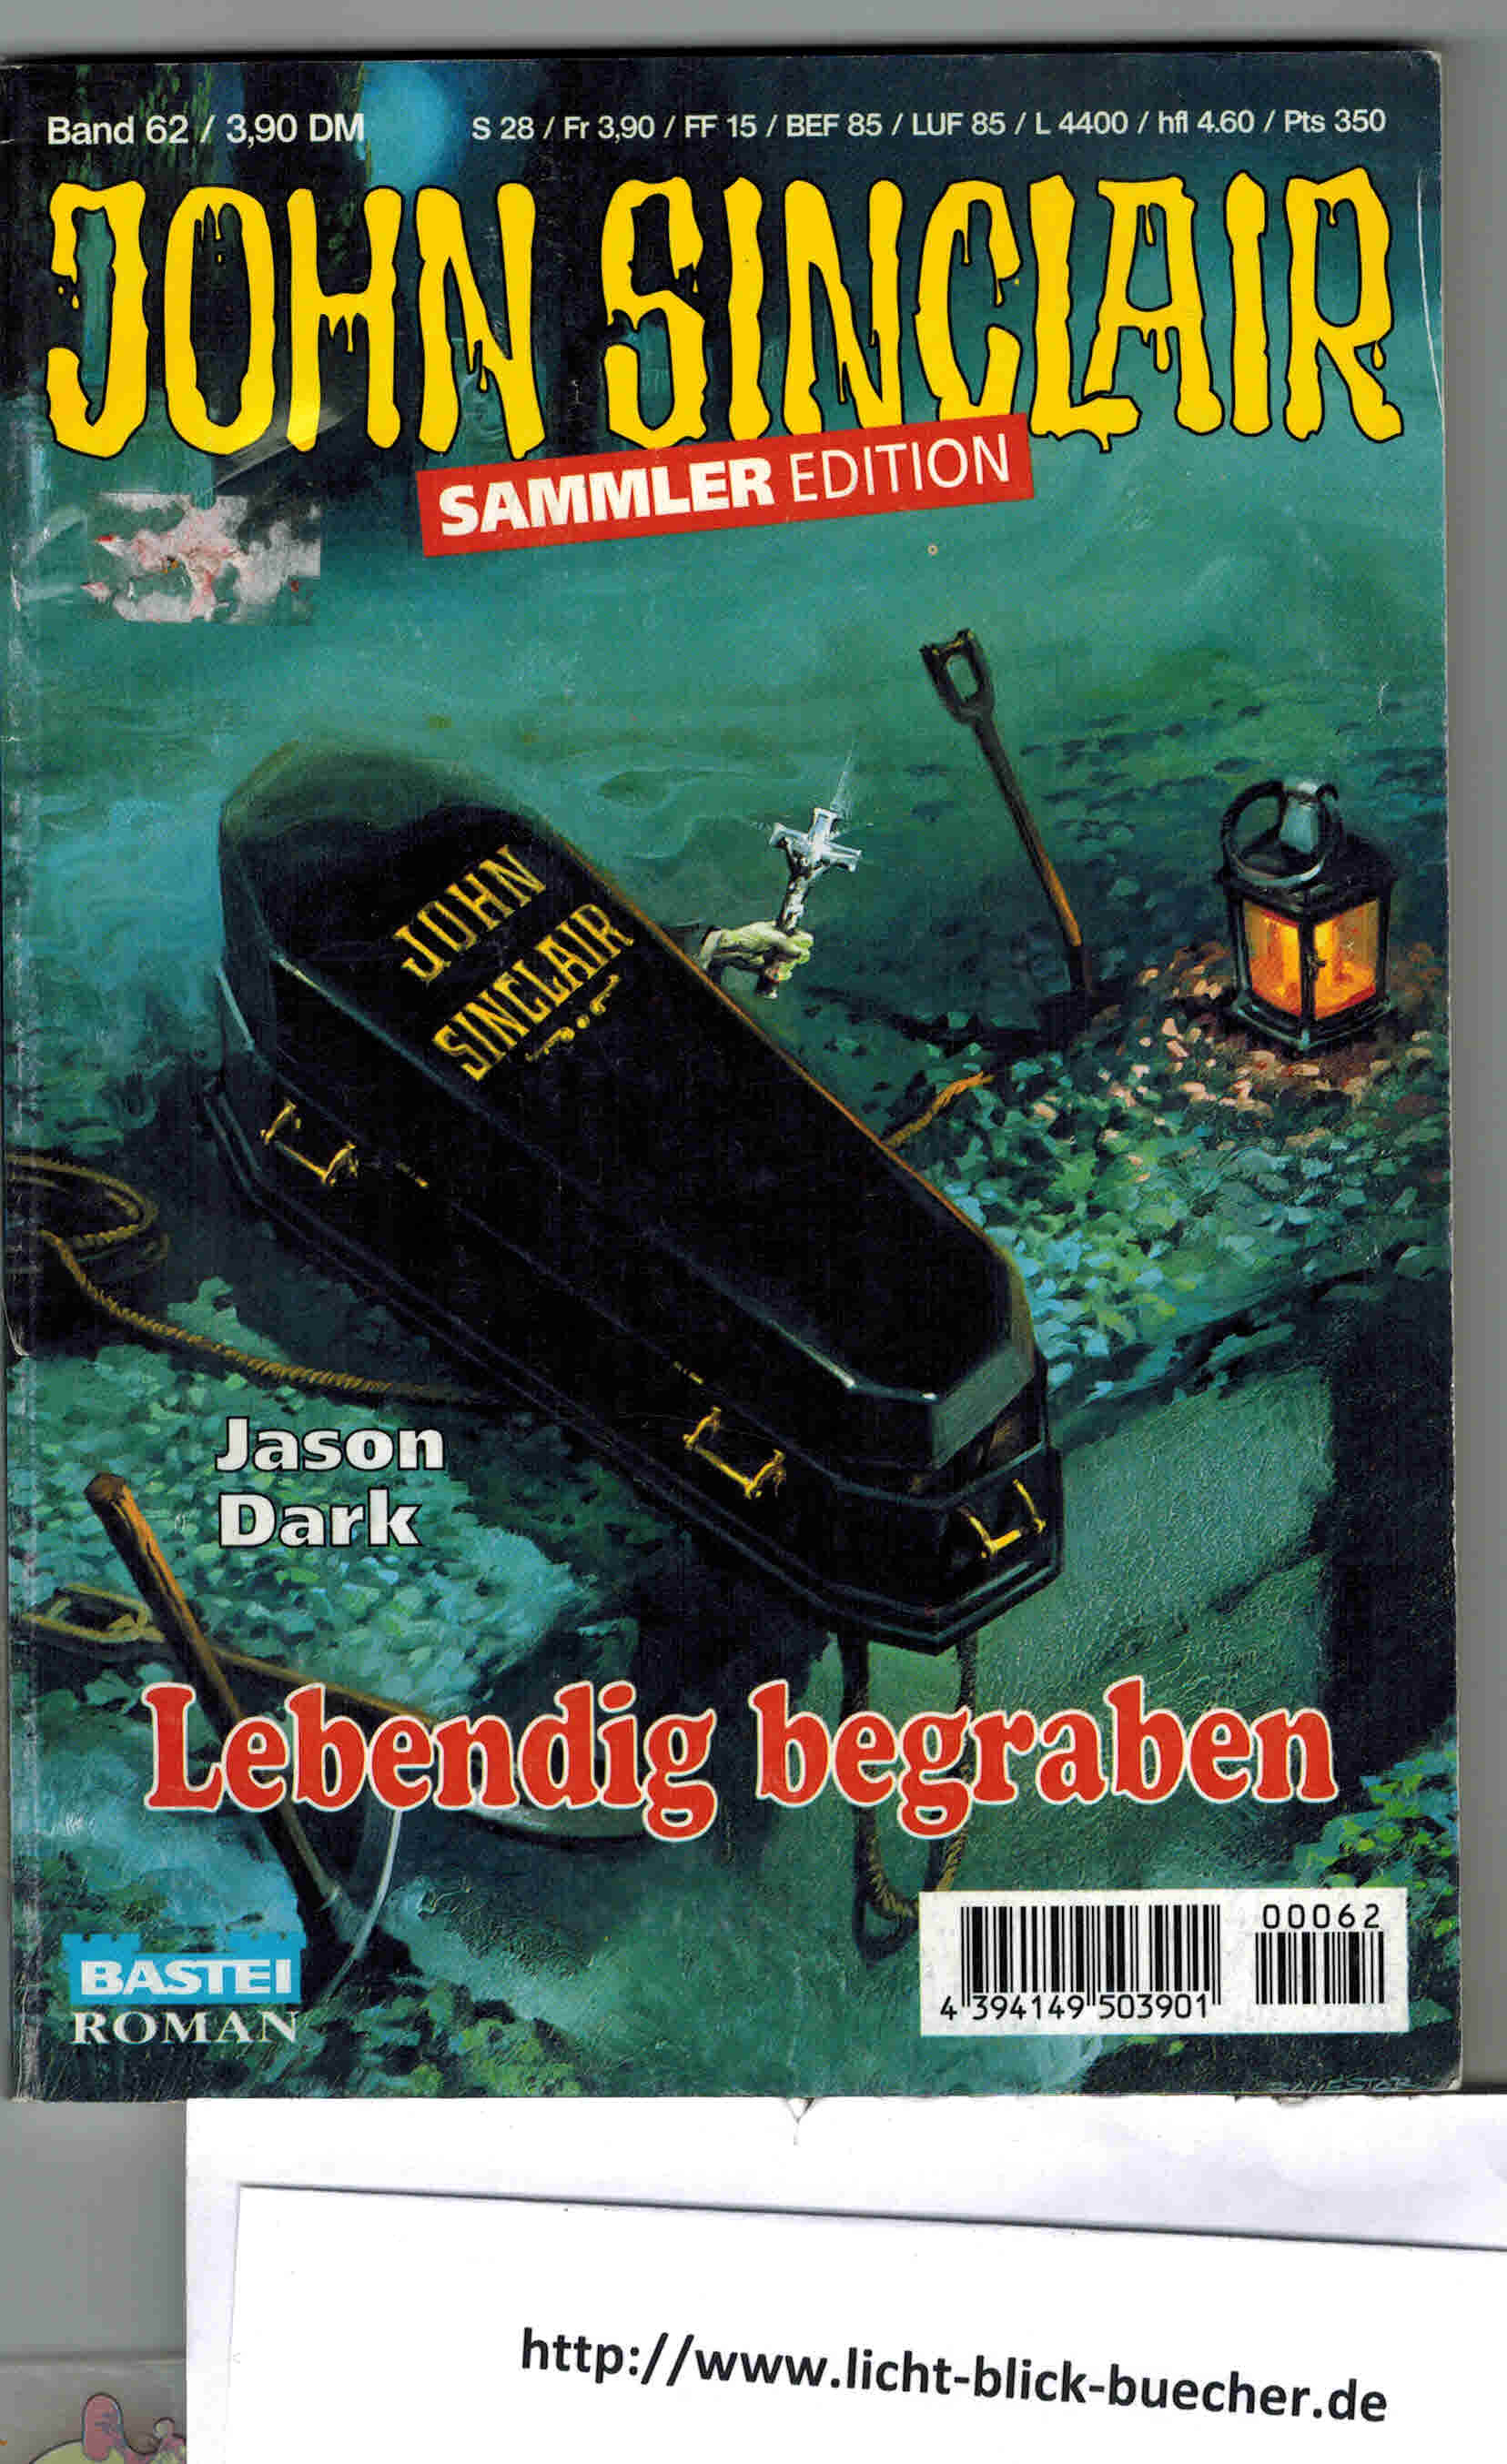 Lebendig begraben John Sinclair Sammleredition Band 62 Jason Dark